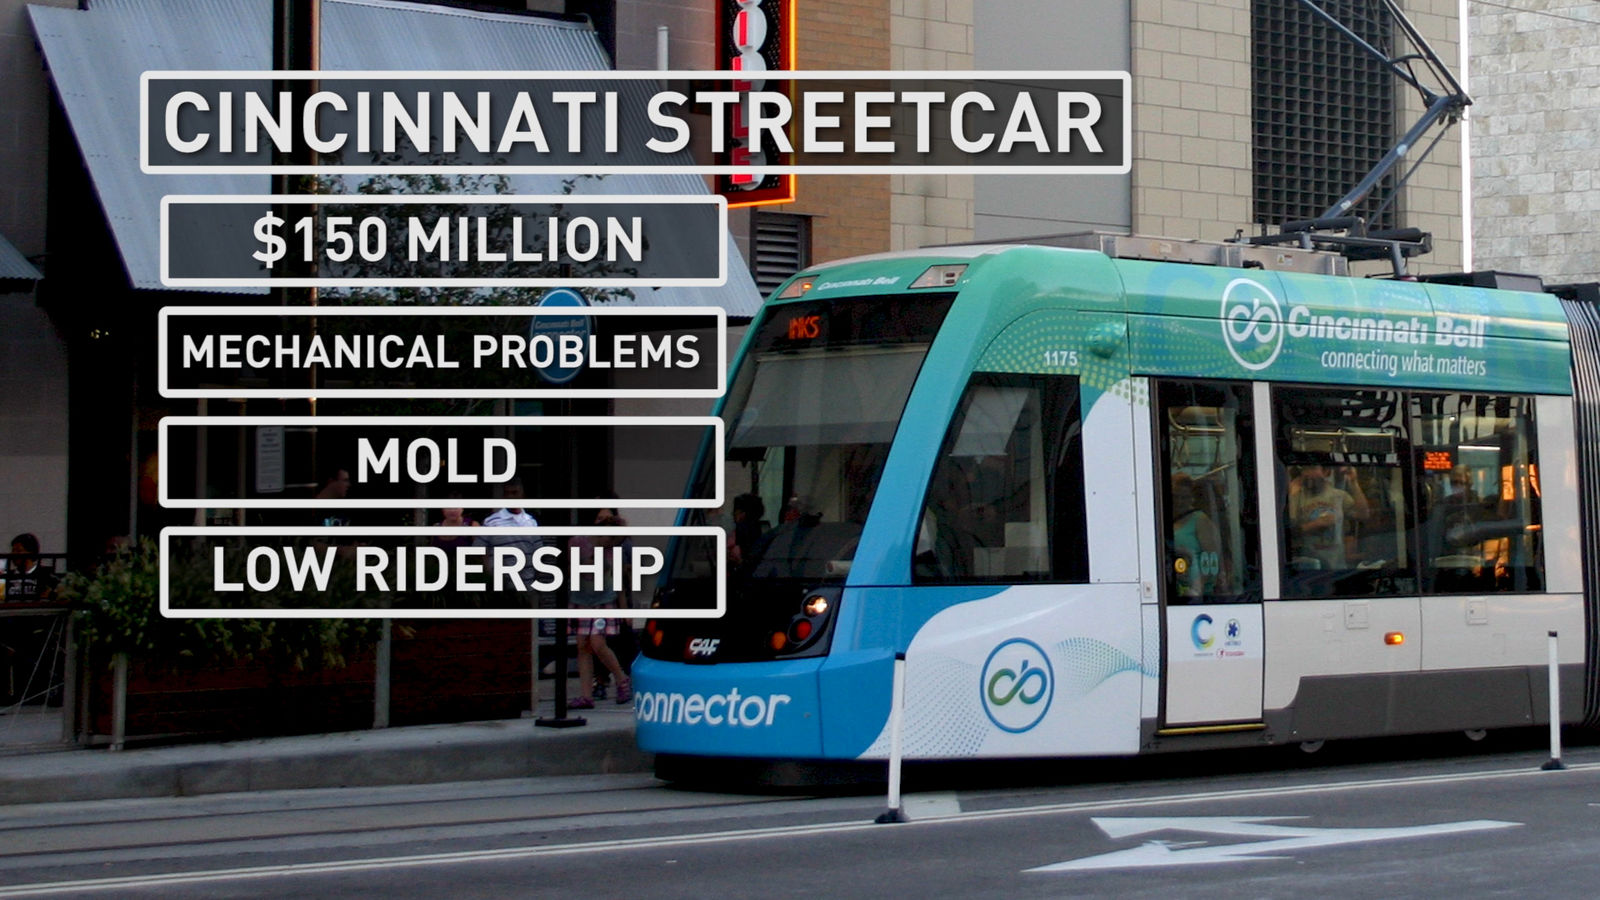 Cincinnati's streetcar system has dealt with problems including low ridership and mechanical issues (Photo: Alex Brauer, Sinclair Broadcast Group)